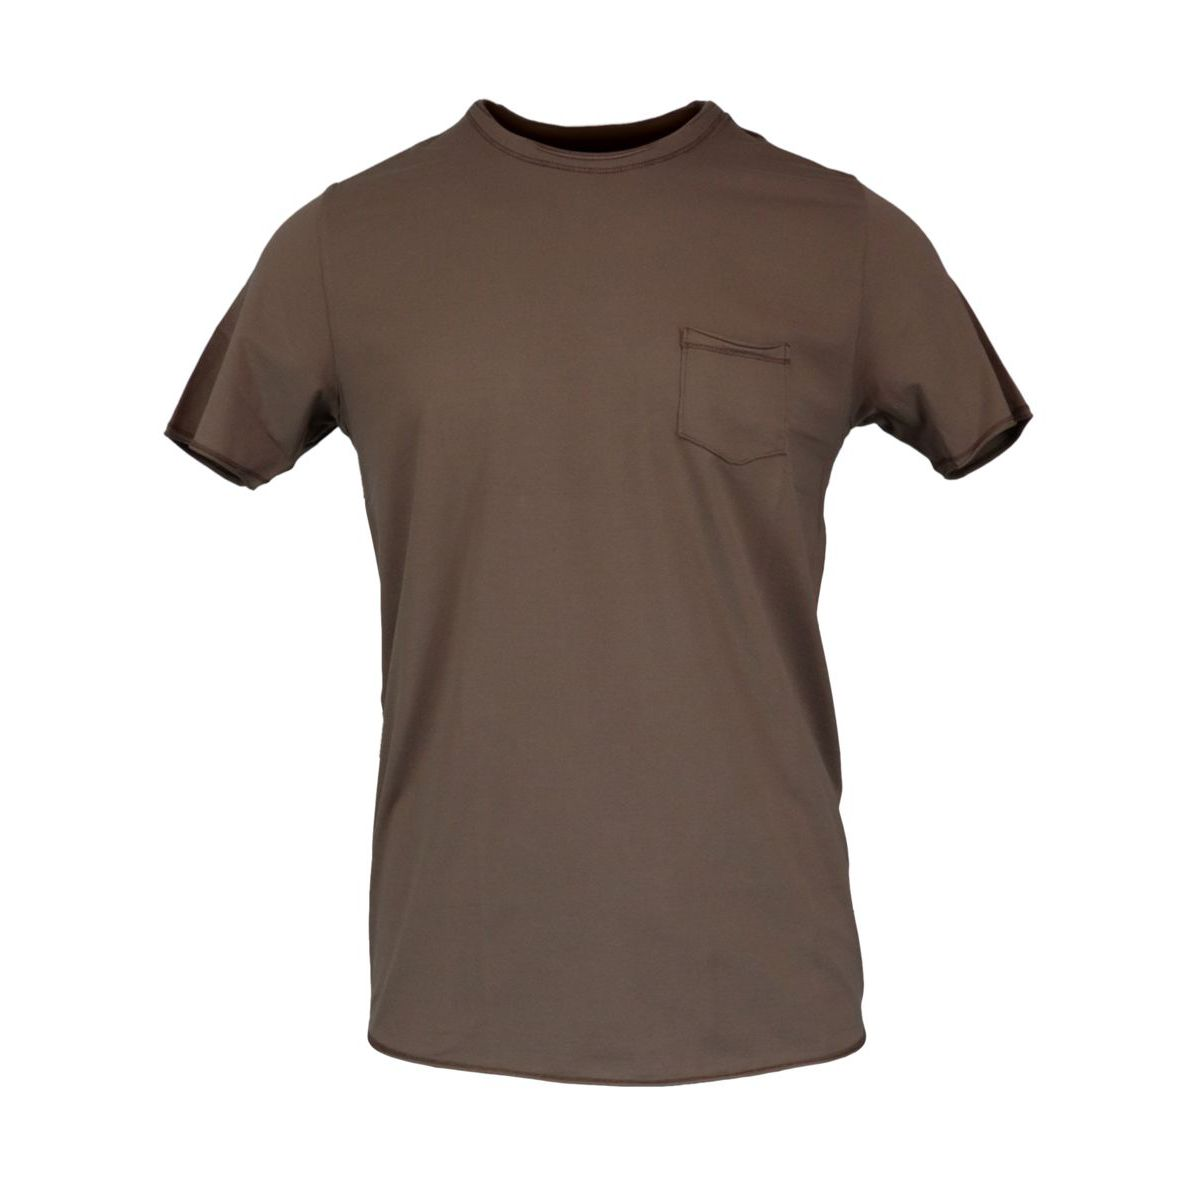 Crew-neck t-shirt in vintage effect cotton and lycra Mud Gran Sasso